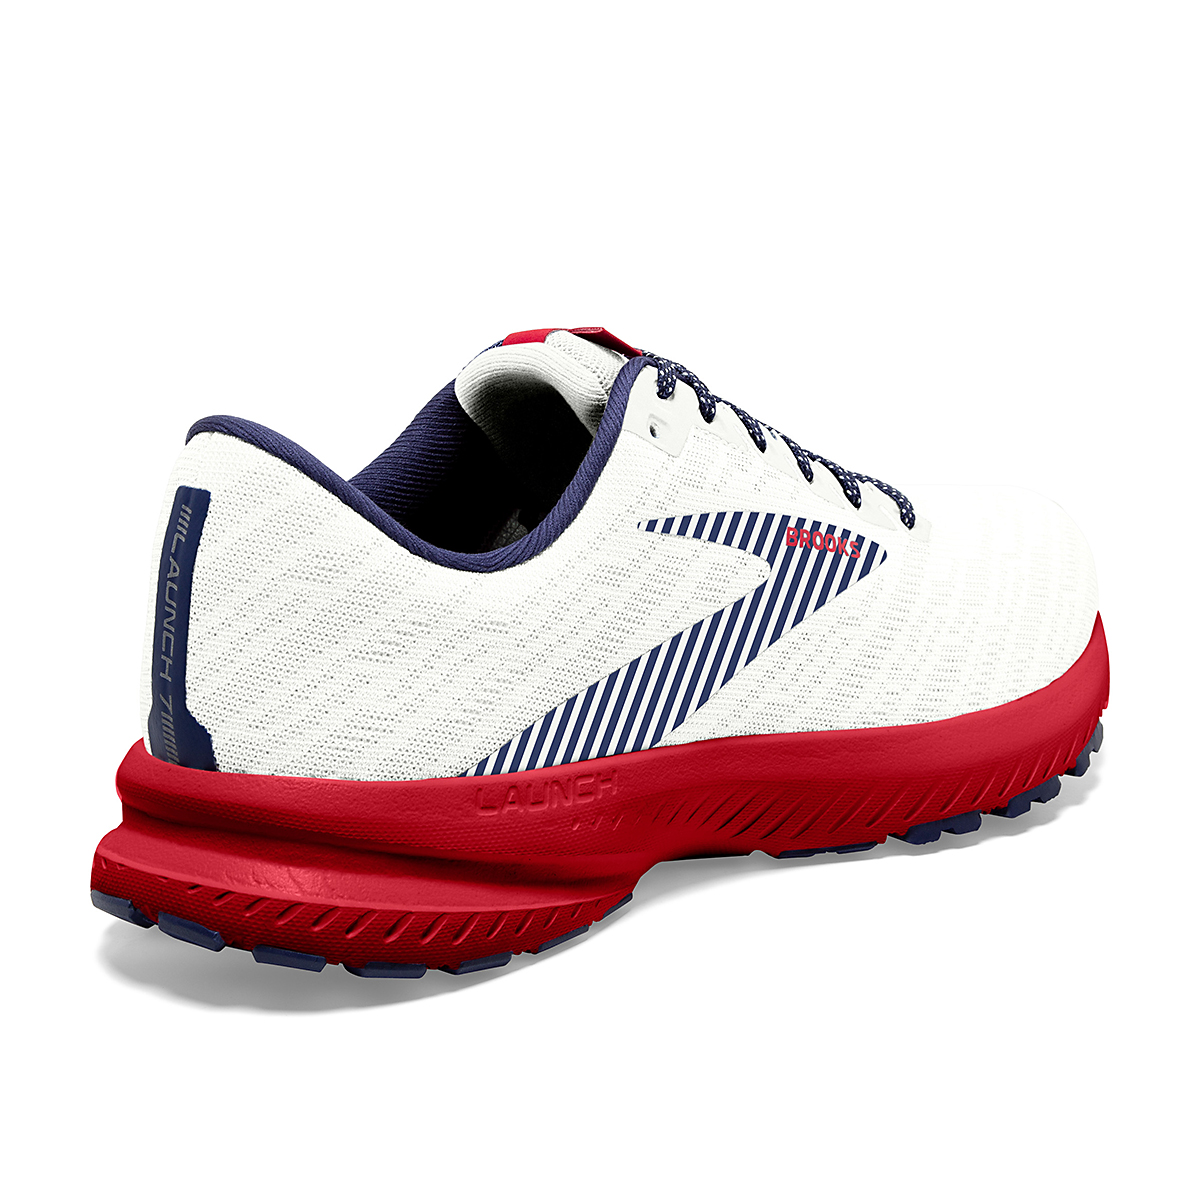 Women's Brooks Launch 7 Usa Running Shoe - Color: White/Blue/Red - Size: 6.5 - Width: Regular, White/Blue/Red, large, image 4